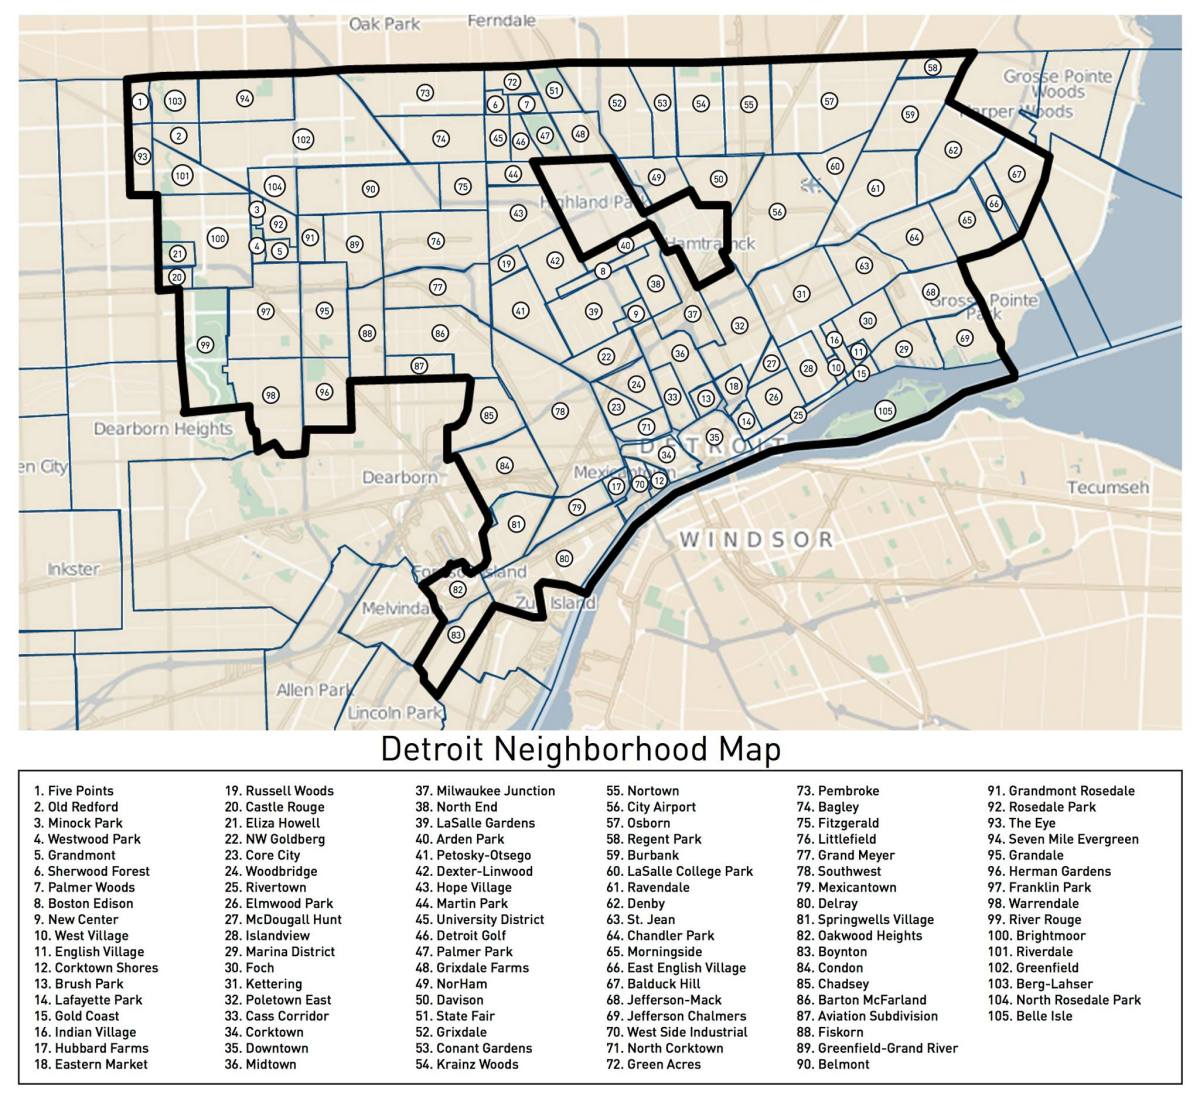 Loveland's Detroit Neighborhoods Map